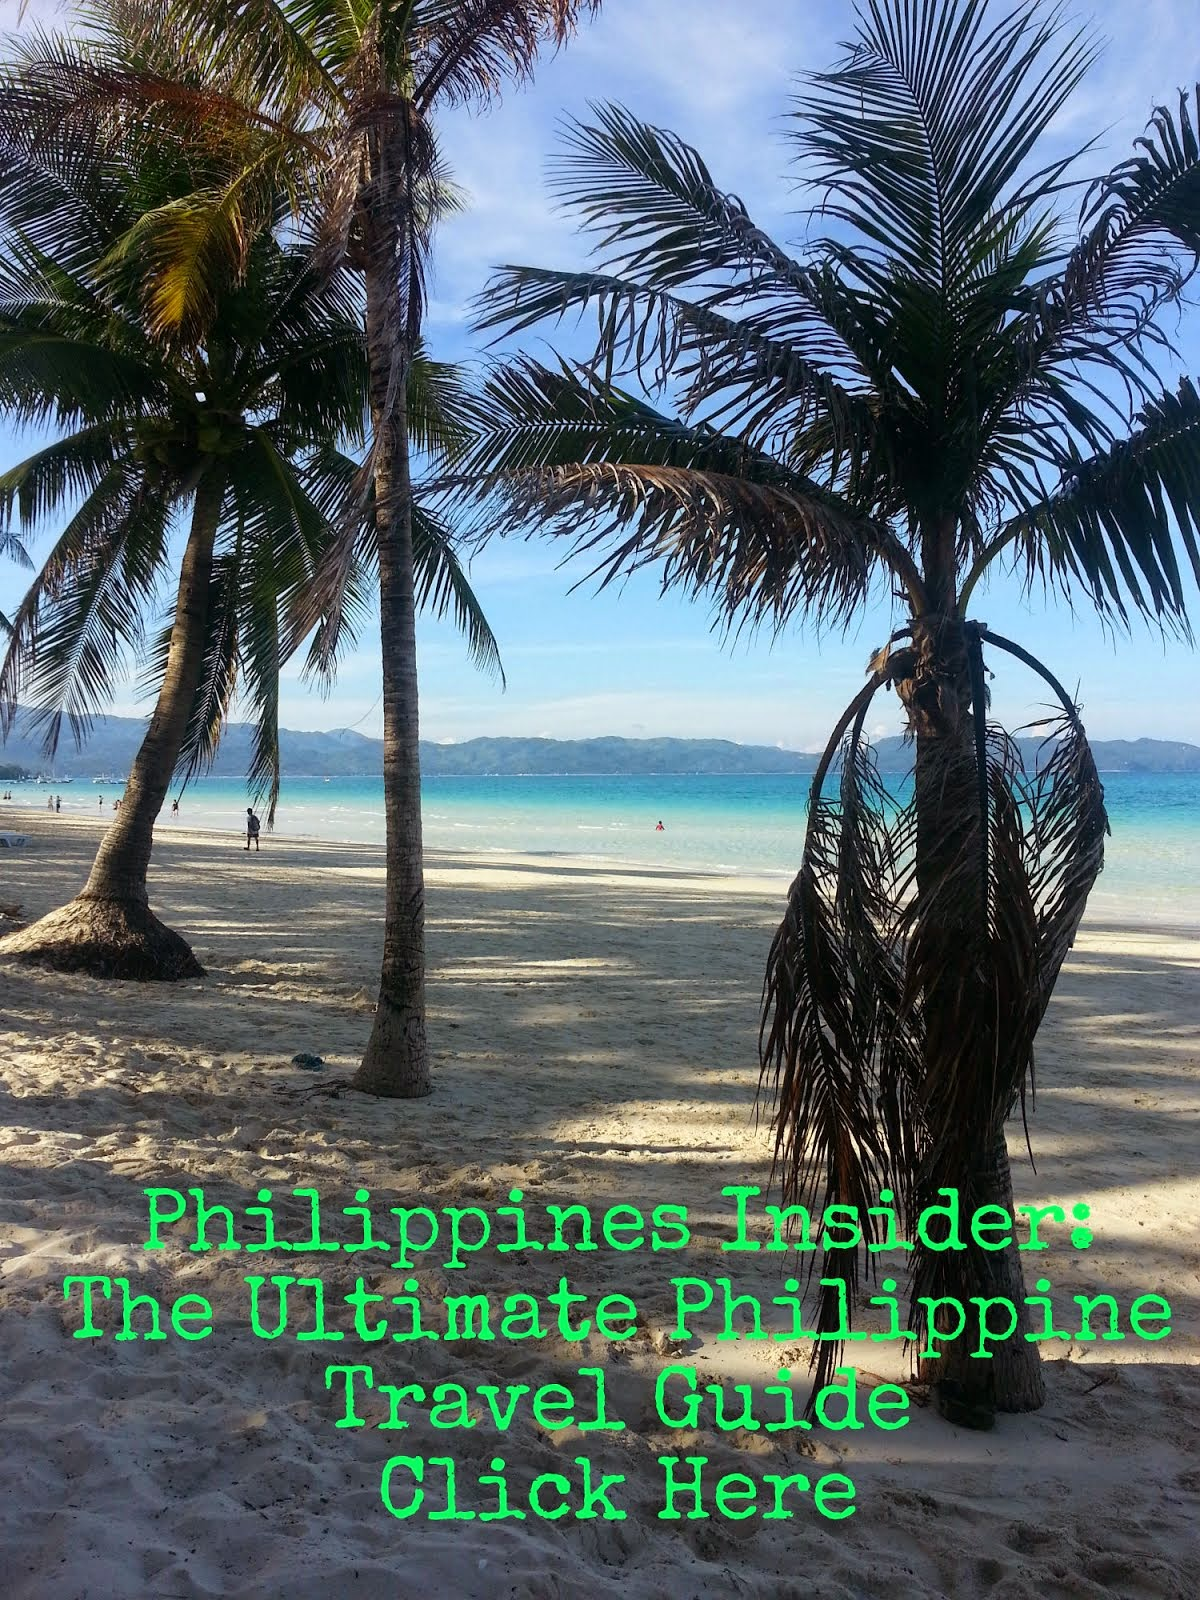 Philippine Travel Guide